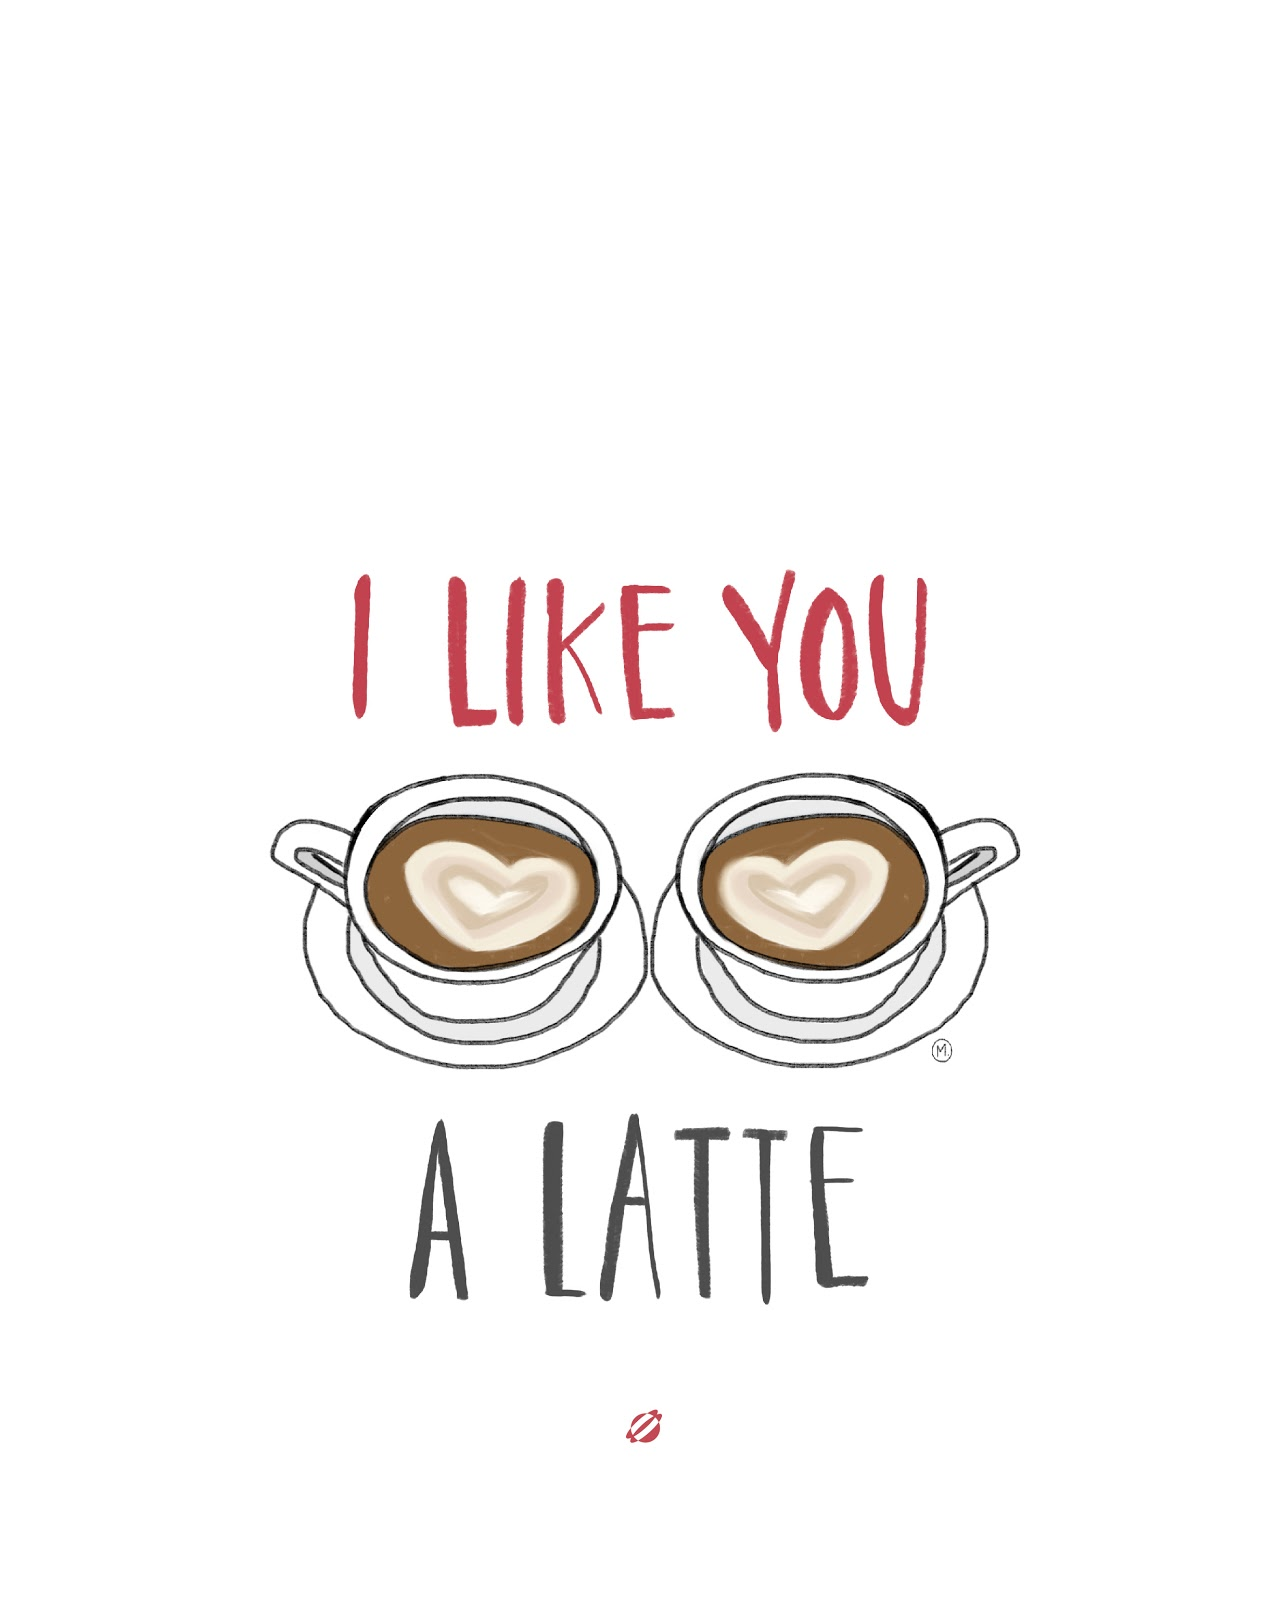 LostBumblebee ©2015 I like you a latte | FREE PRINTABLE | Personal USE ONLY.